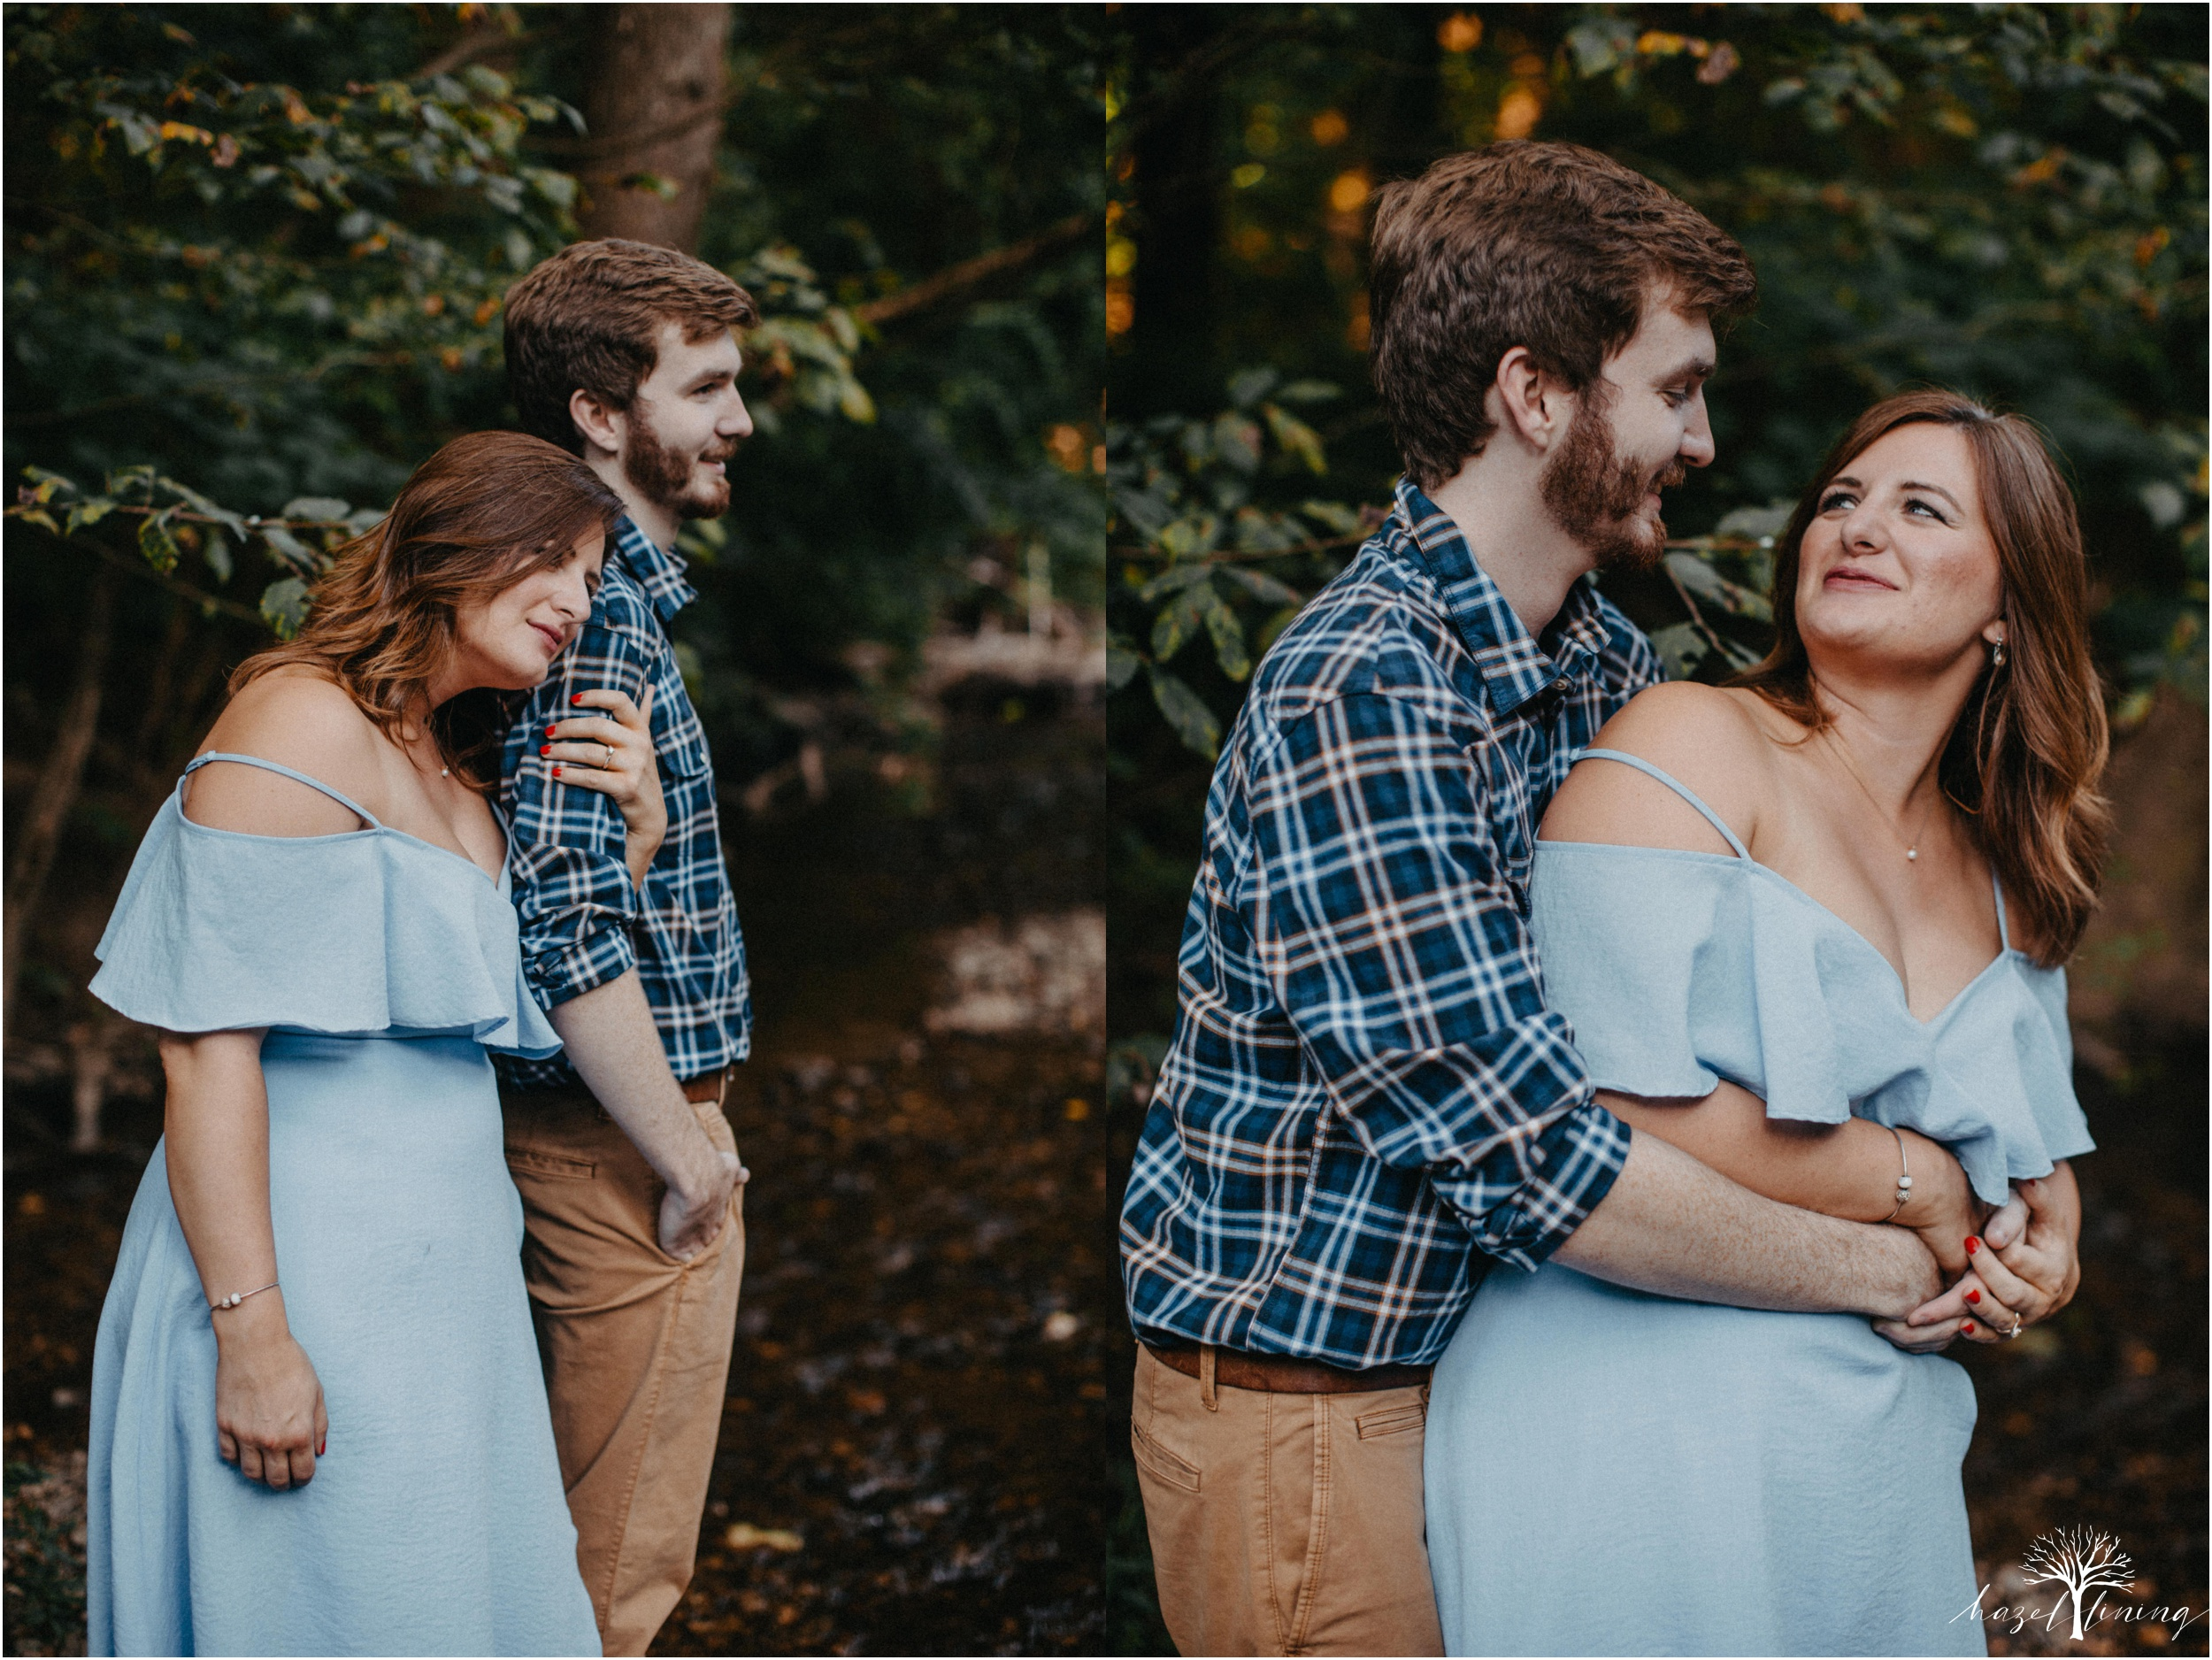 paige-kochey-chris-graham-valley-green-wissahickon-park-philadelphia-summer-engagement-session-hazel-lining-photography-destination-elopement-wedding-engagement-photography_0020.jpg